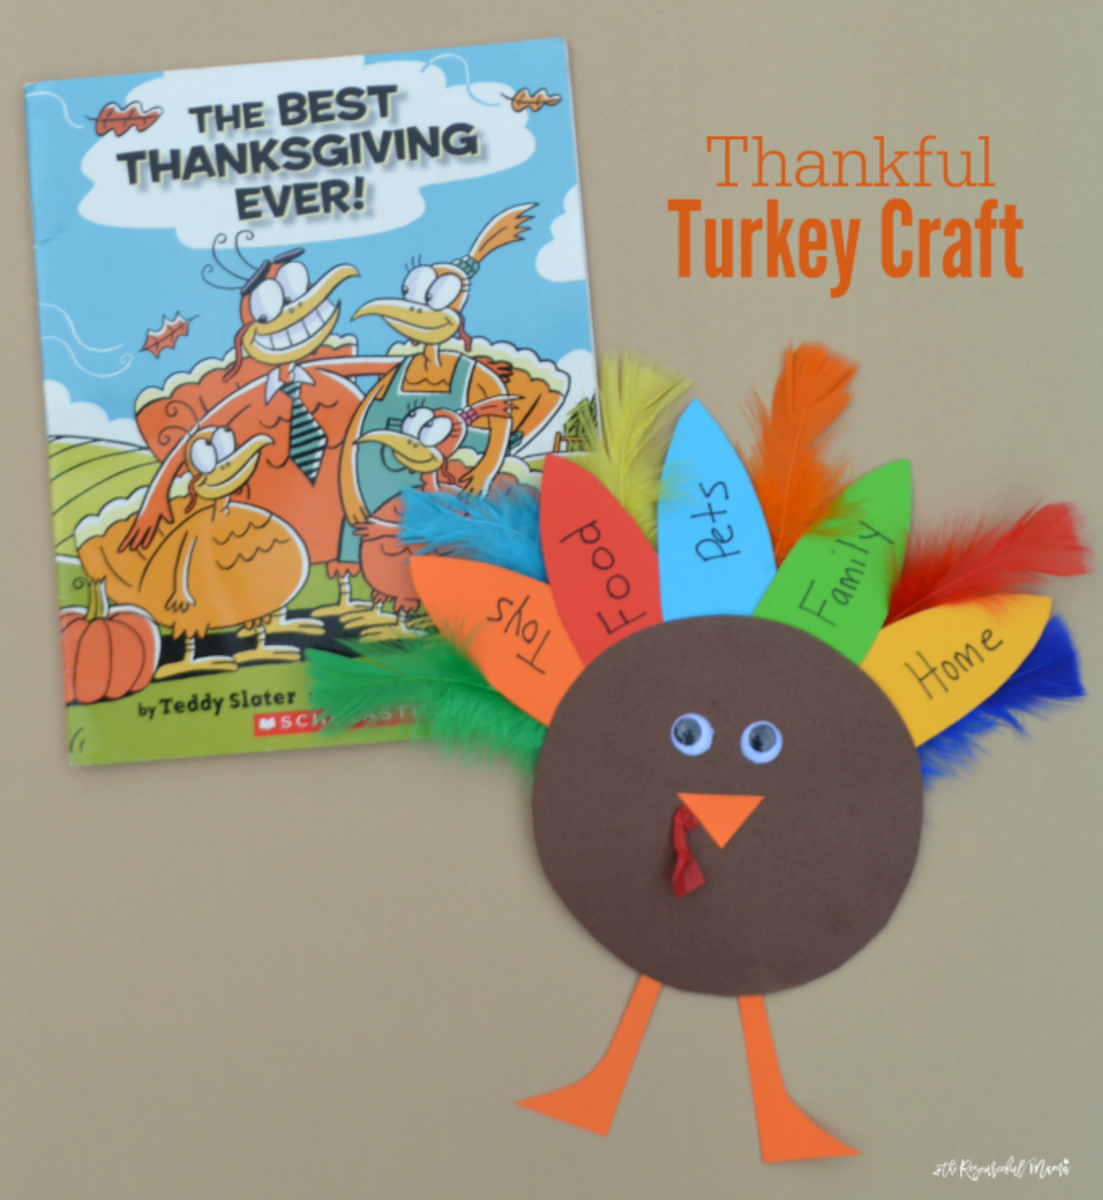 Thankful Turkey Craft from The Resourceful Mama